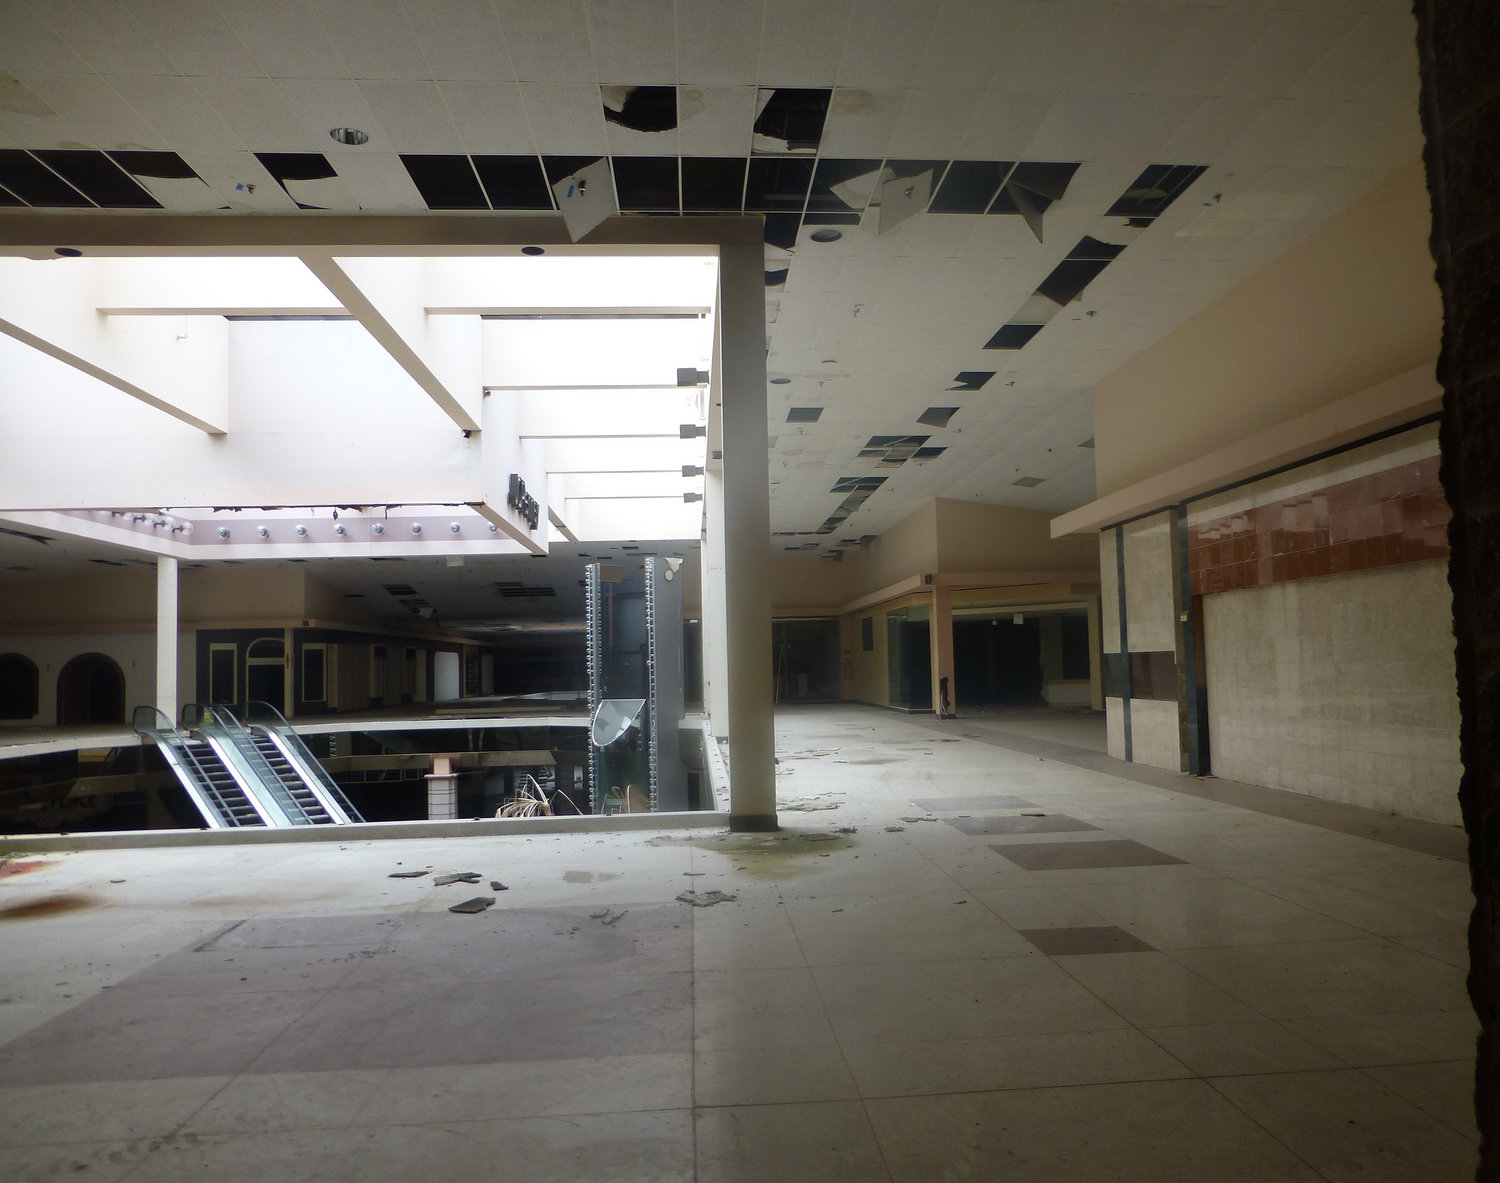 Rolling Acres abandoned mall interior, Akron, Ohio. Flickr/Nicholas Eckhart, used under CC BY.